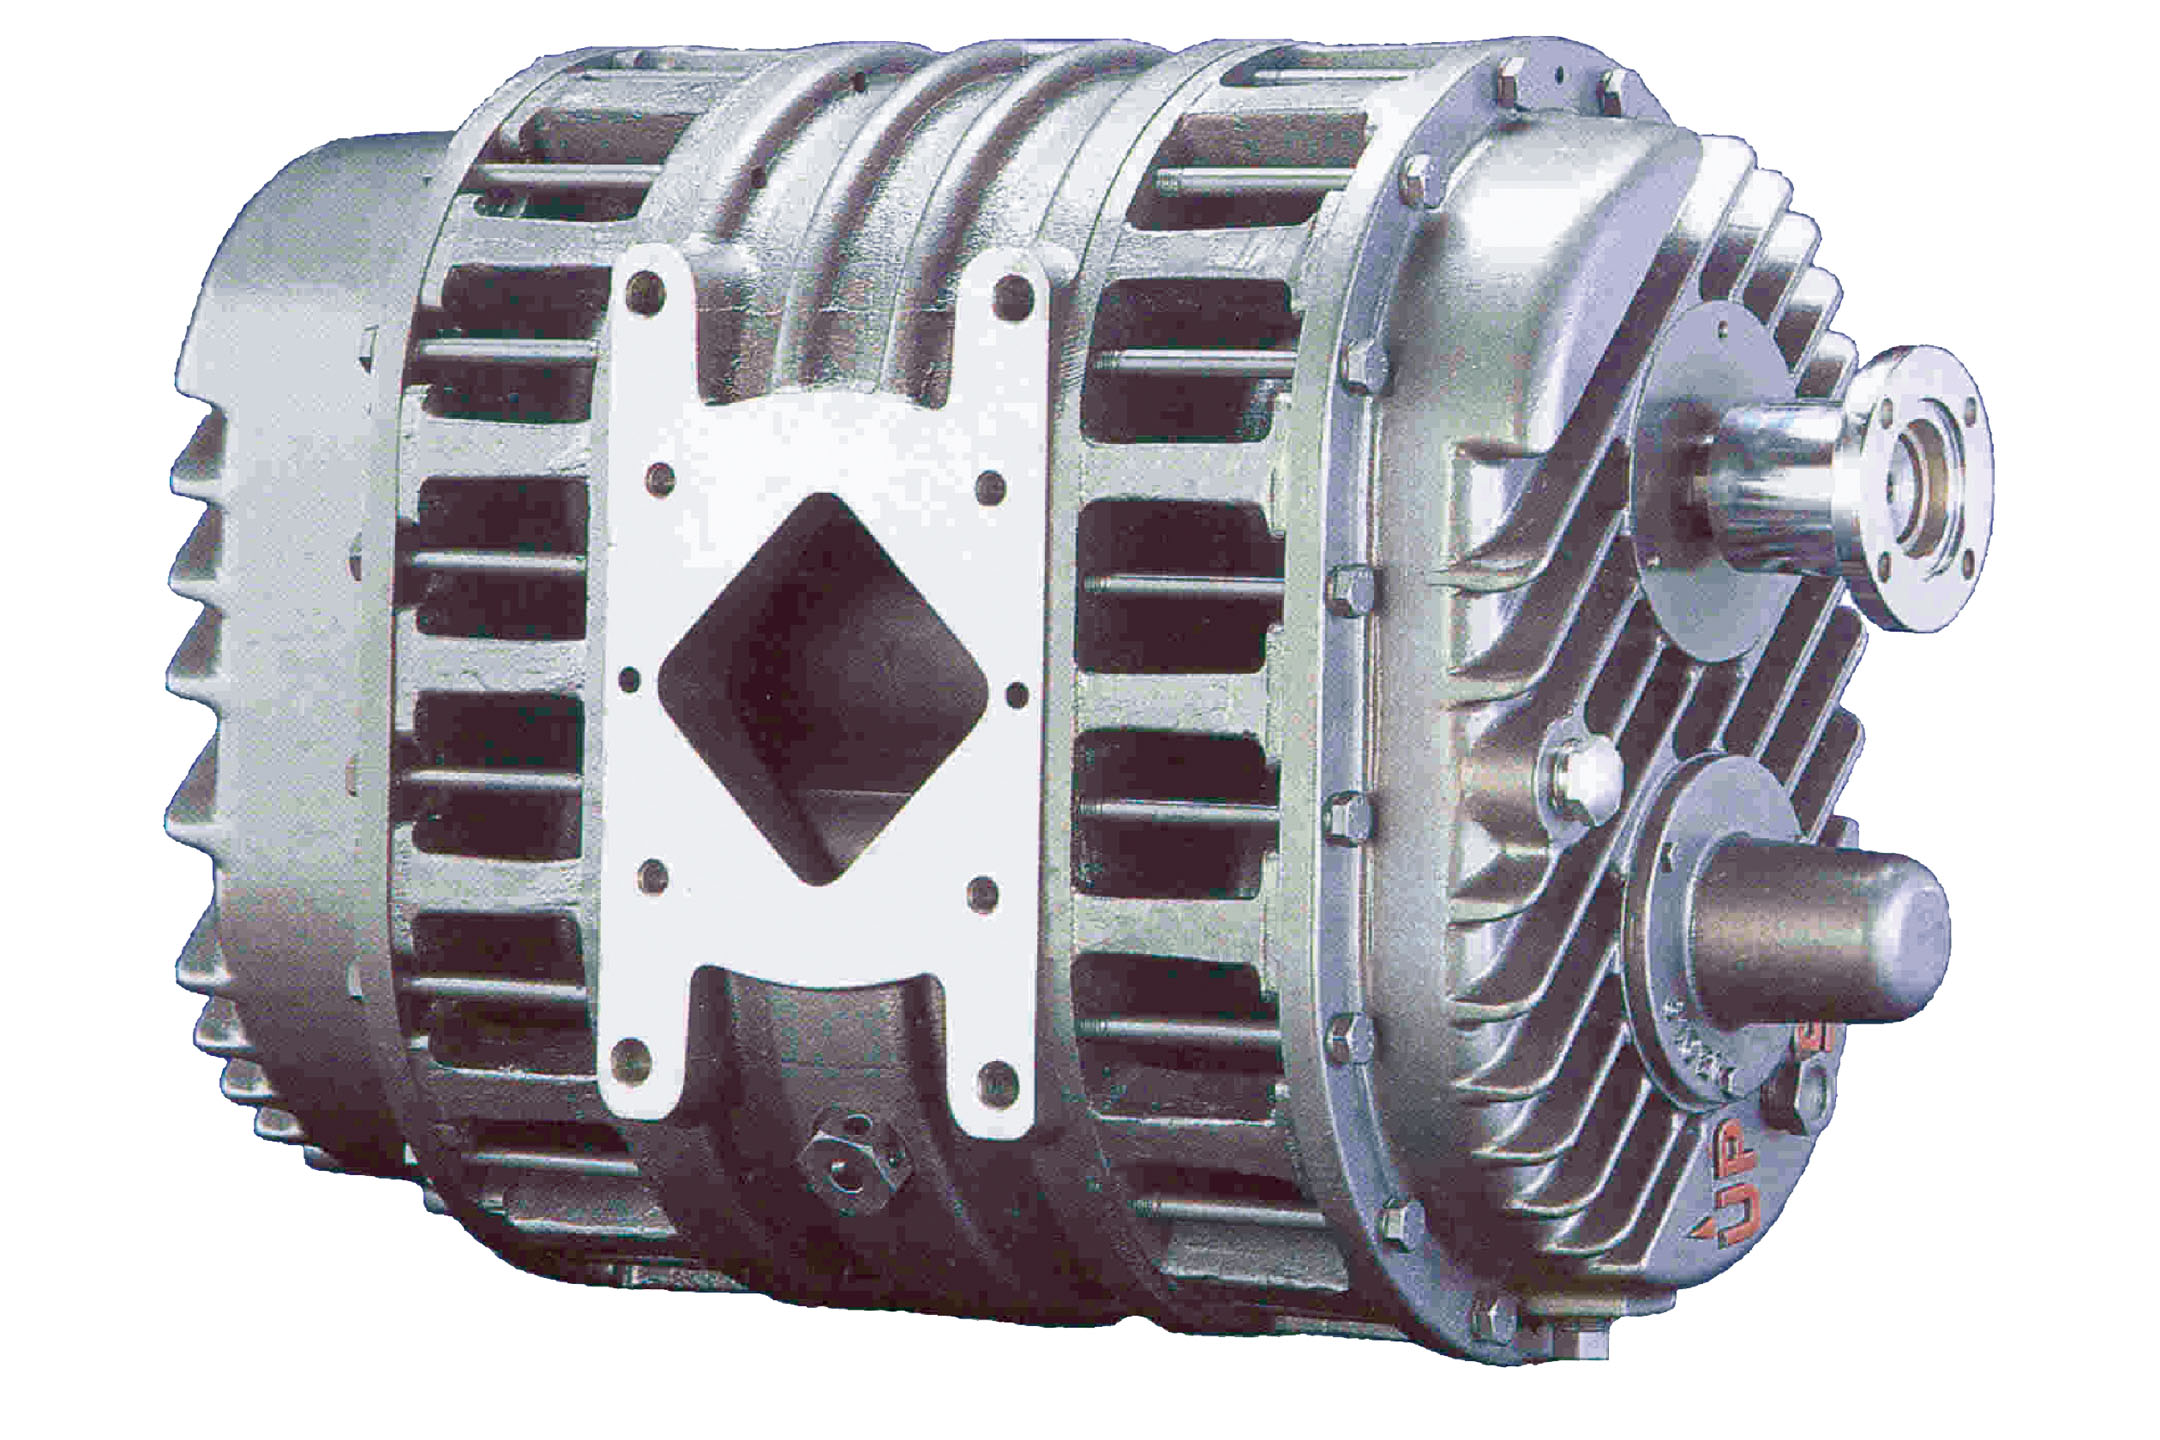 Blower Pumps For Trucks : Drum vacuum pumps truck blowers